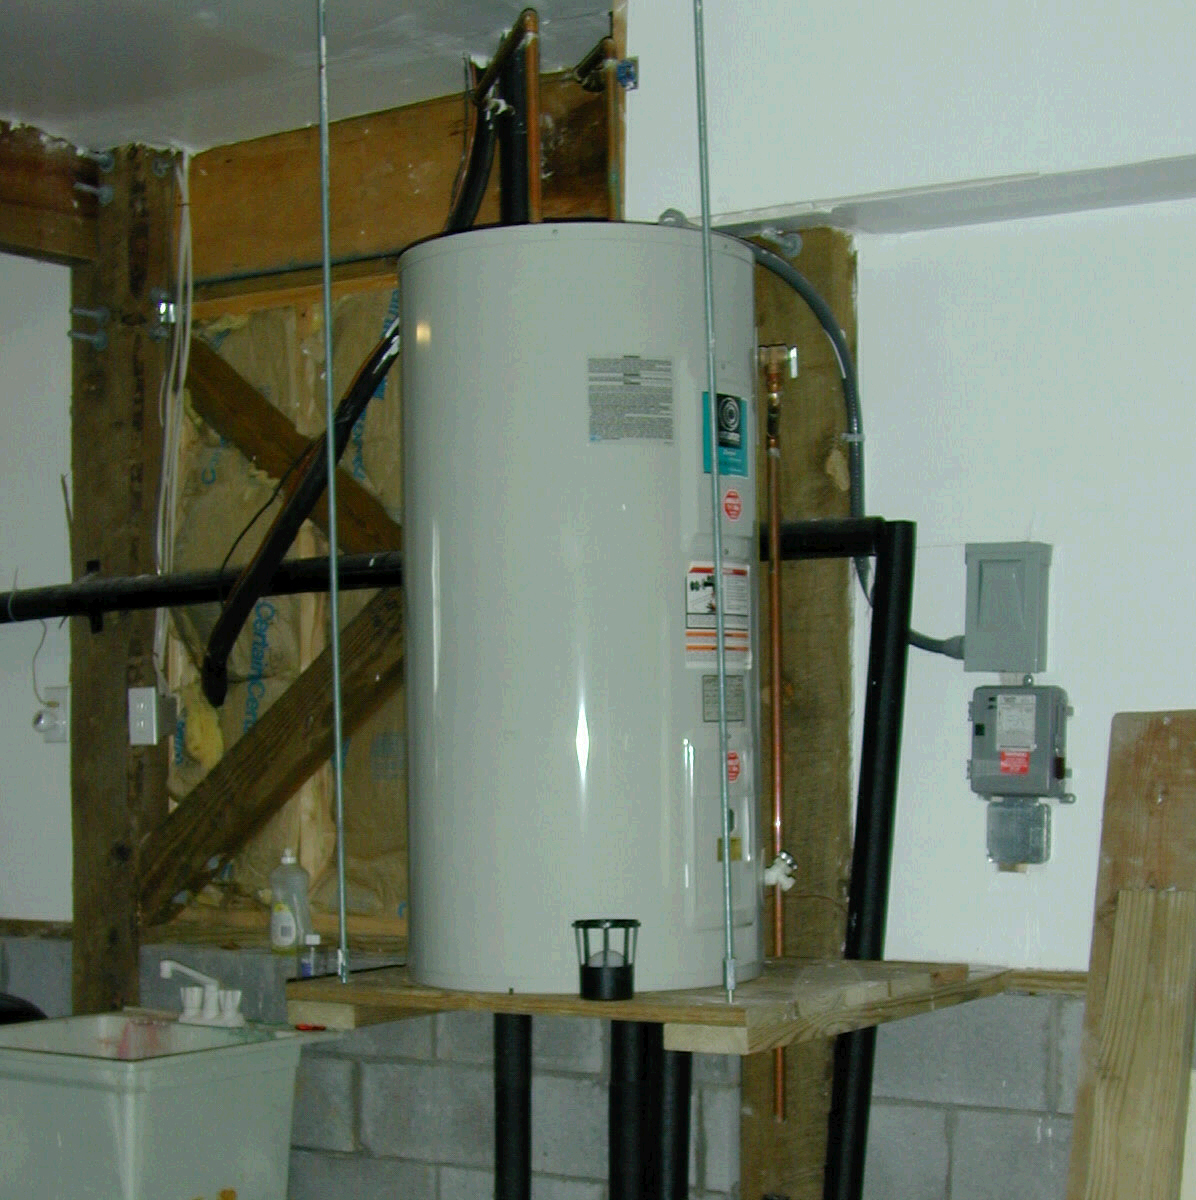 How Should My Boiler Be Maintained? - Carroll Plumbing & Heating, Inc.